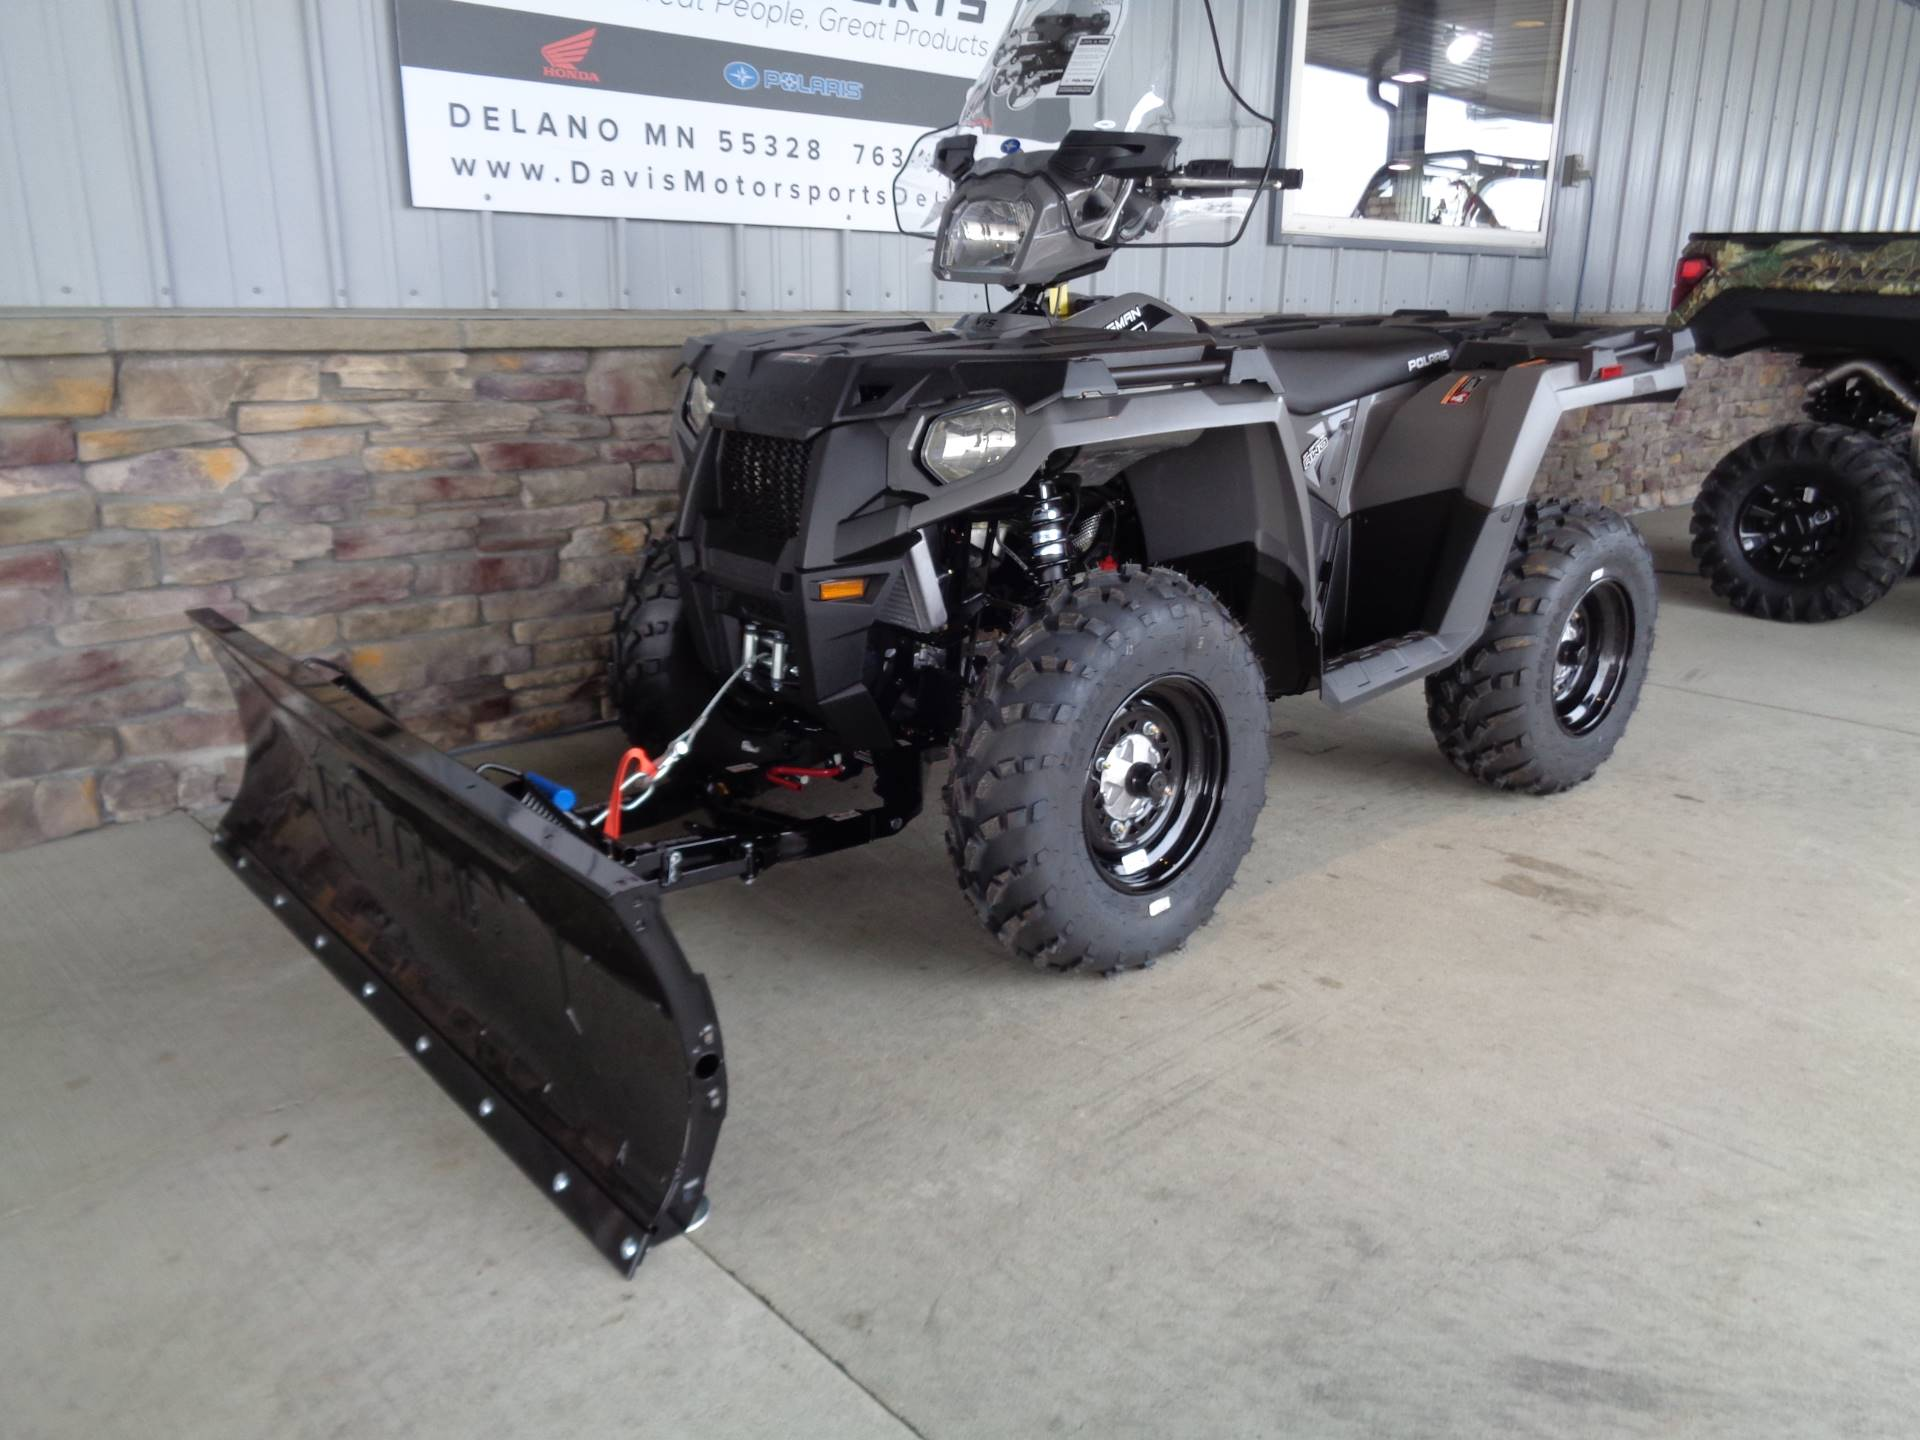 2020 Polaris Sportsman 570 EPS in Delano, Minnesota - Photo 4